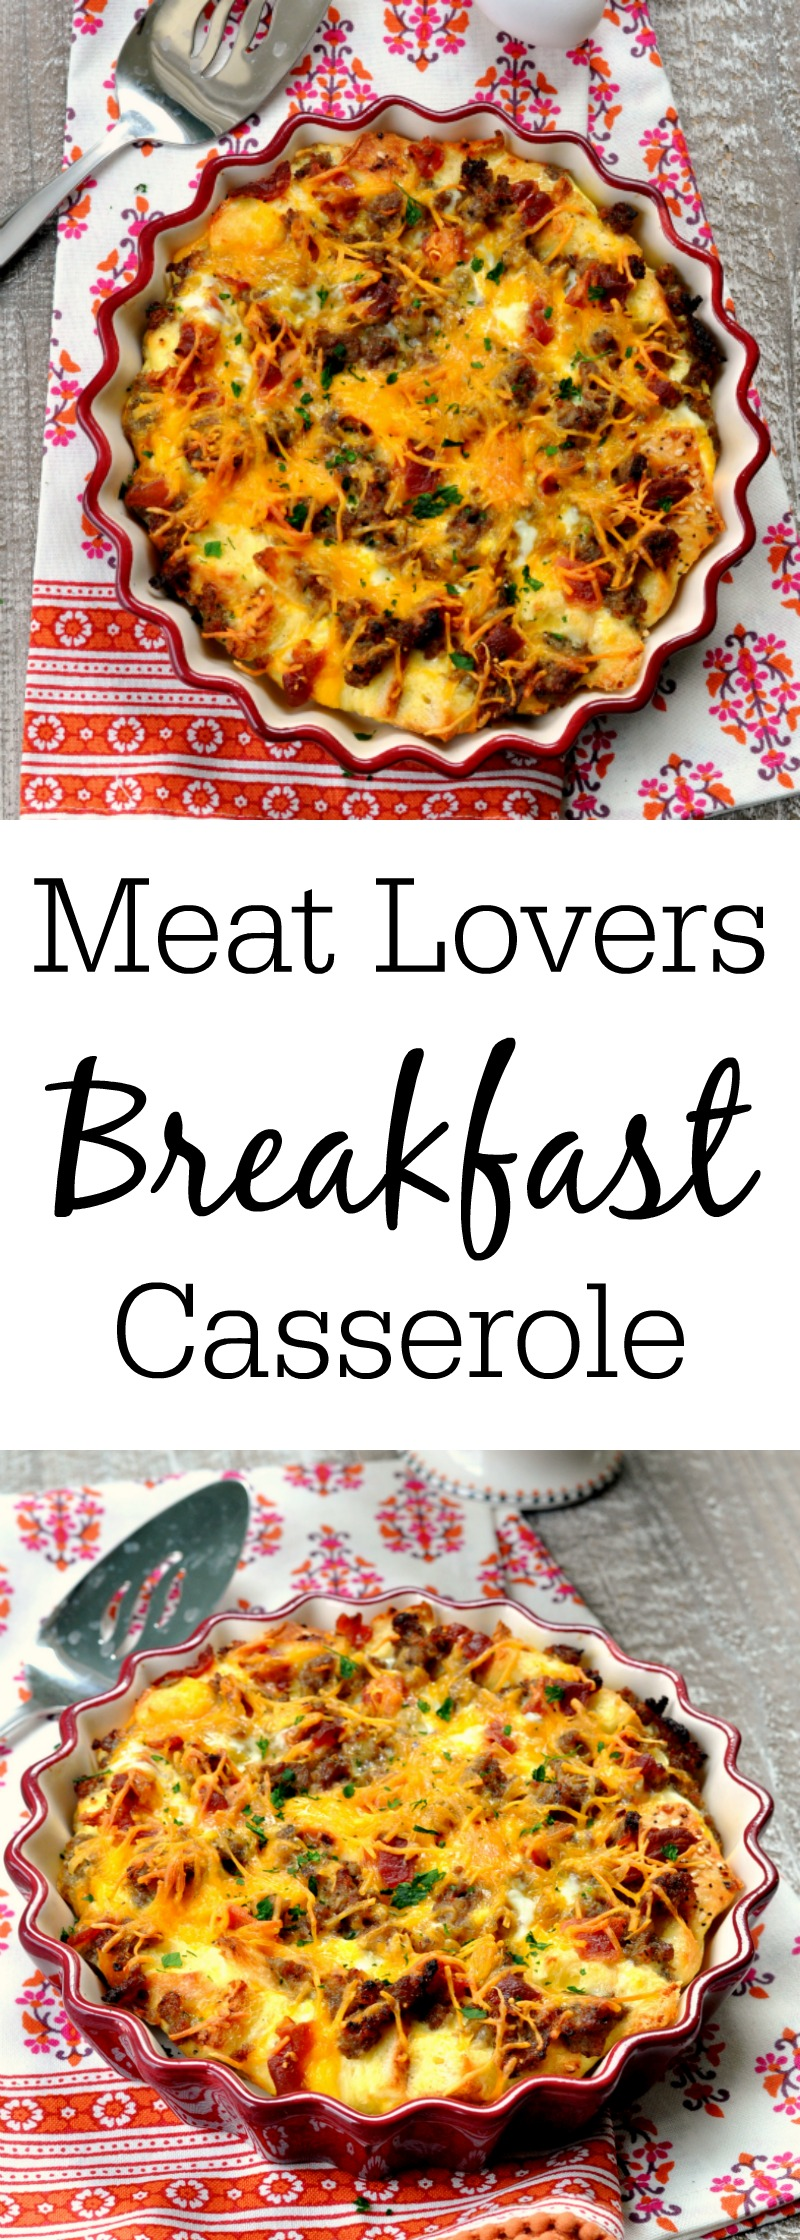 Meat Lovers Breakfast Casserole